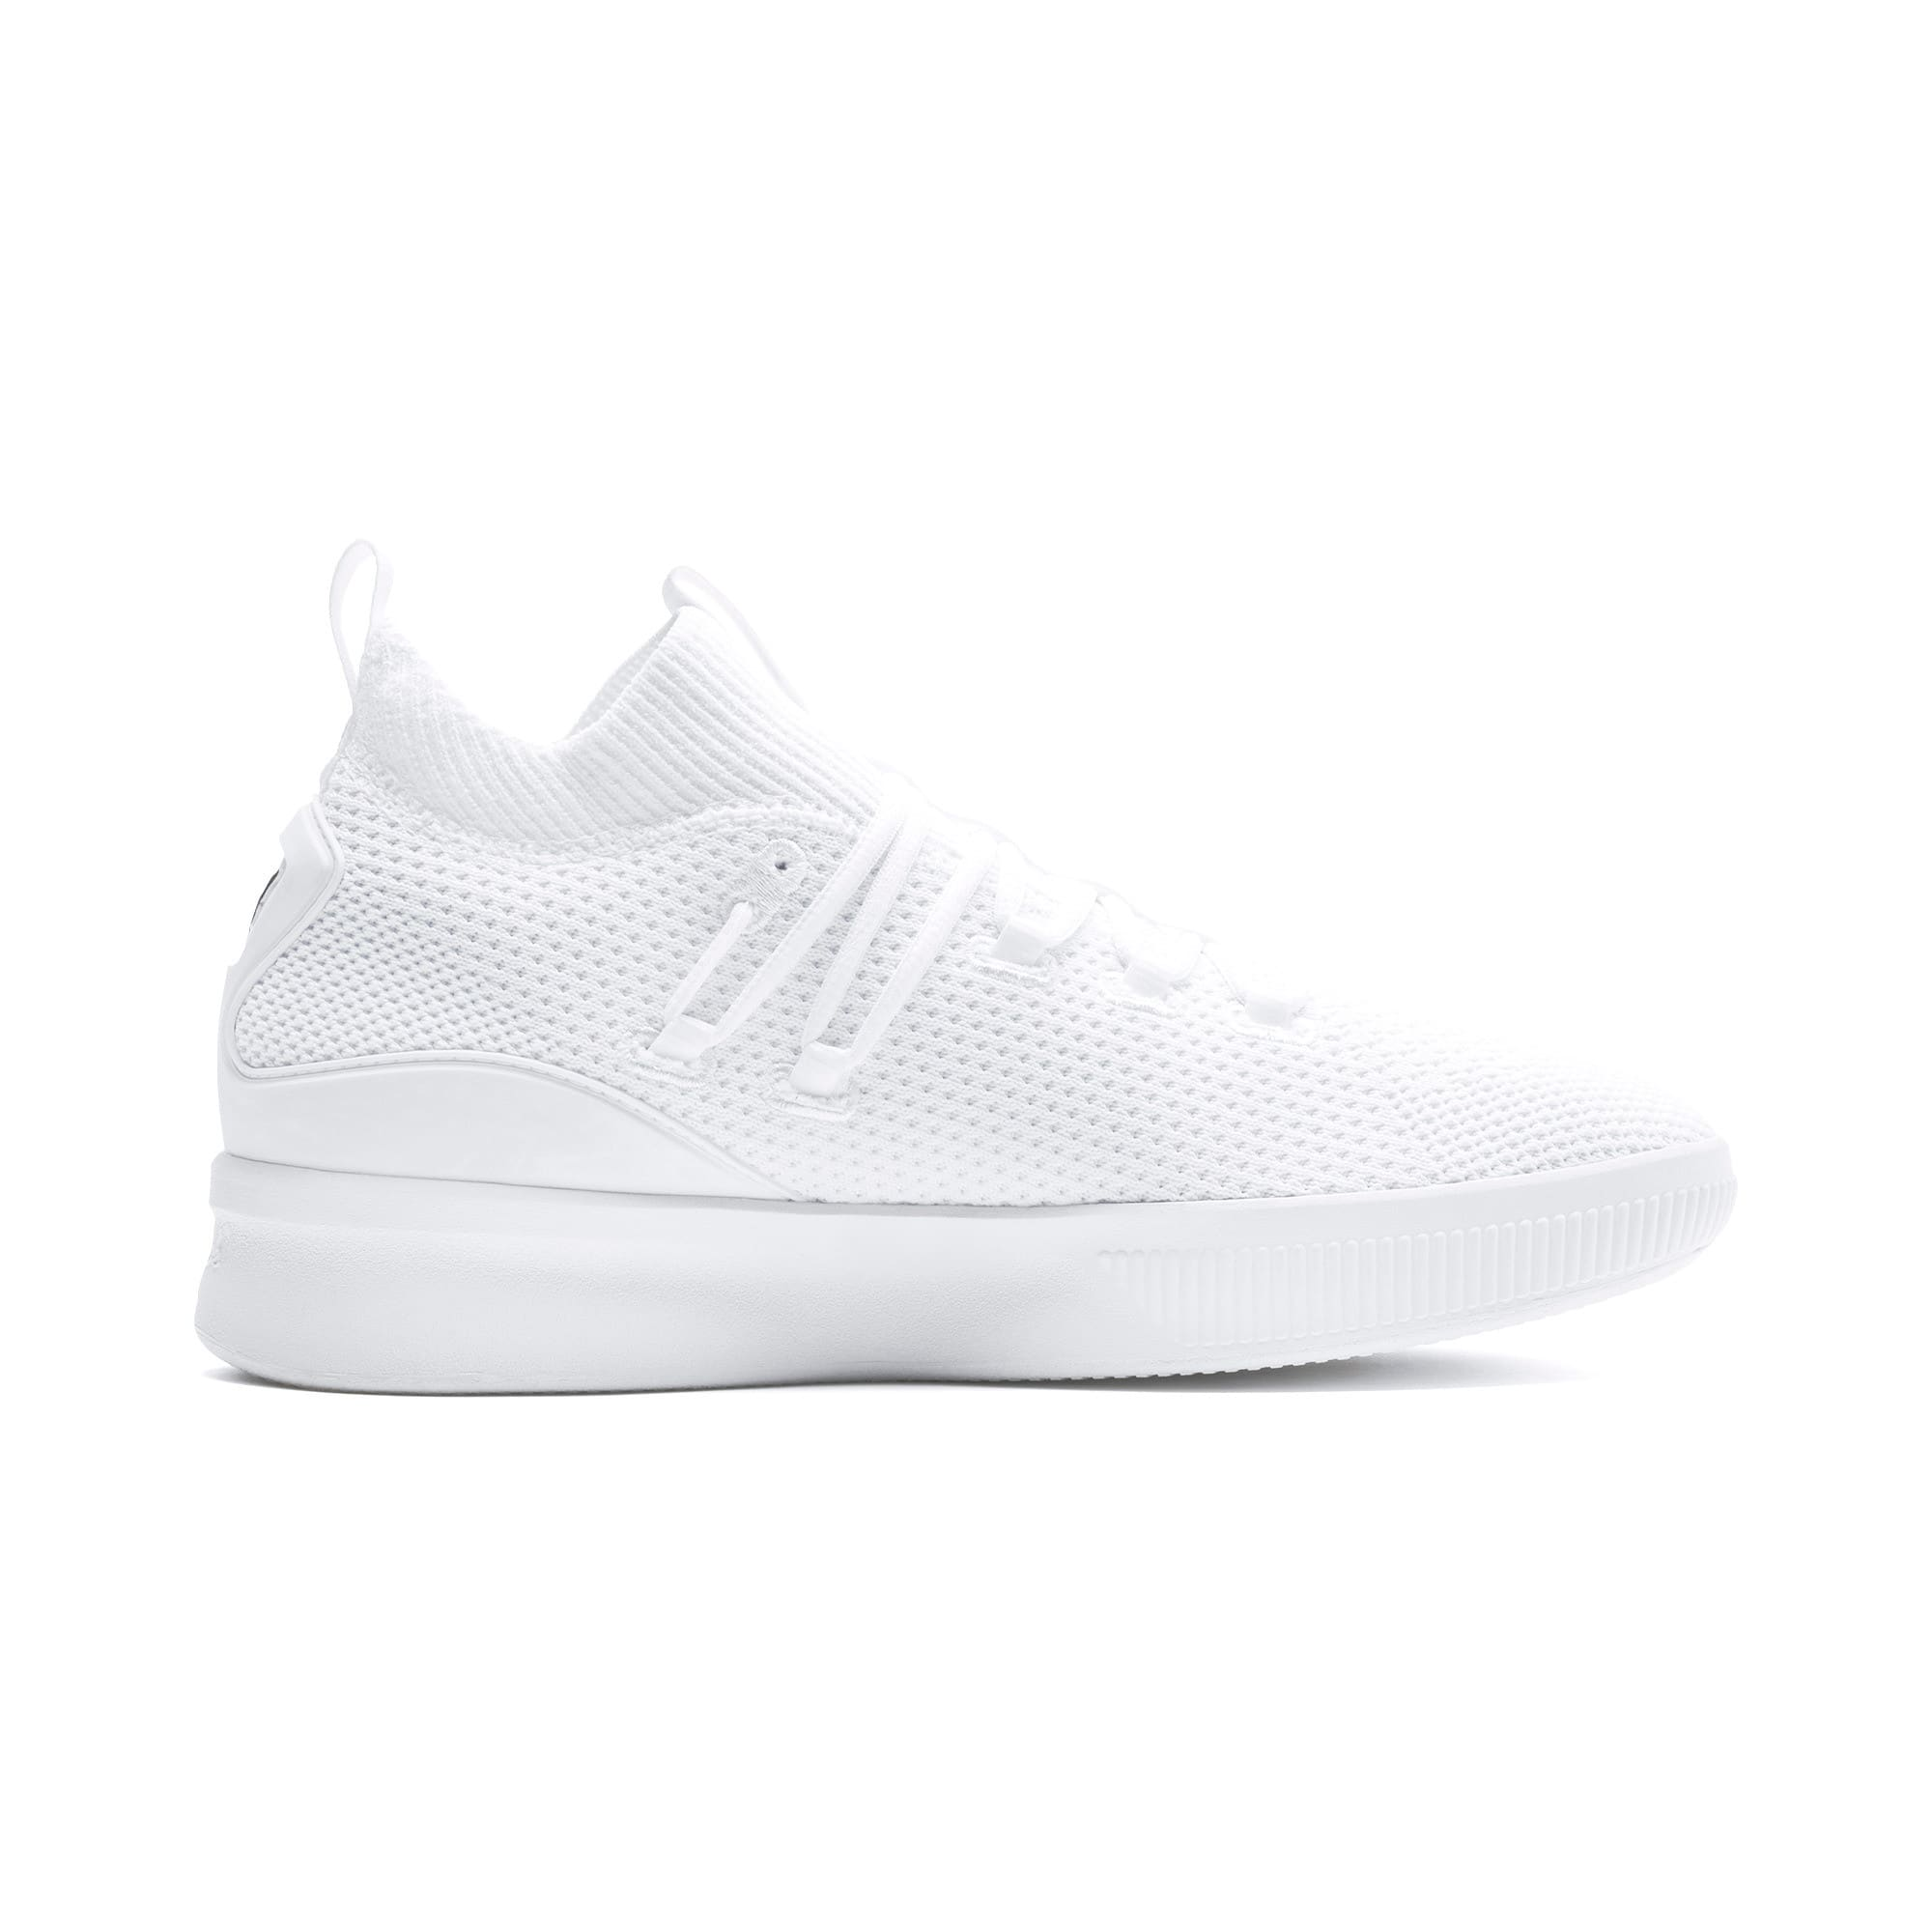 Thumbnail 5 of Clyde Court Core Basketball Shoes, Puma White, medium